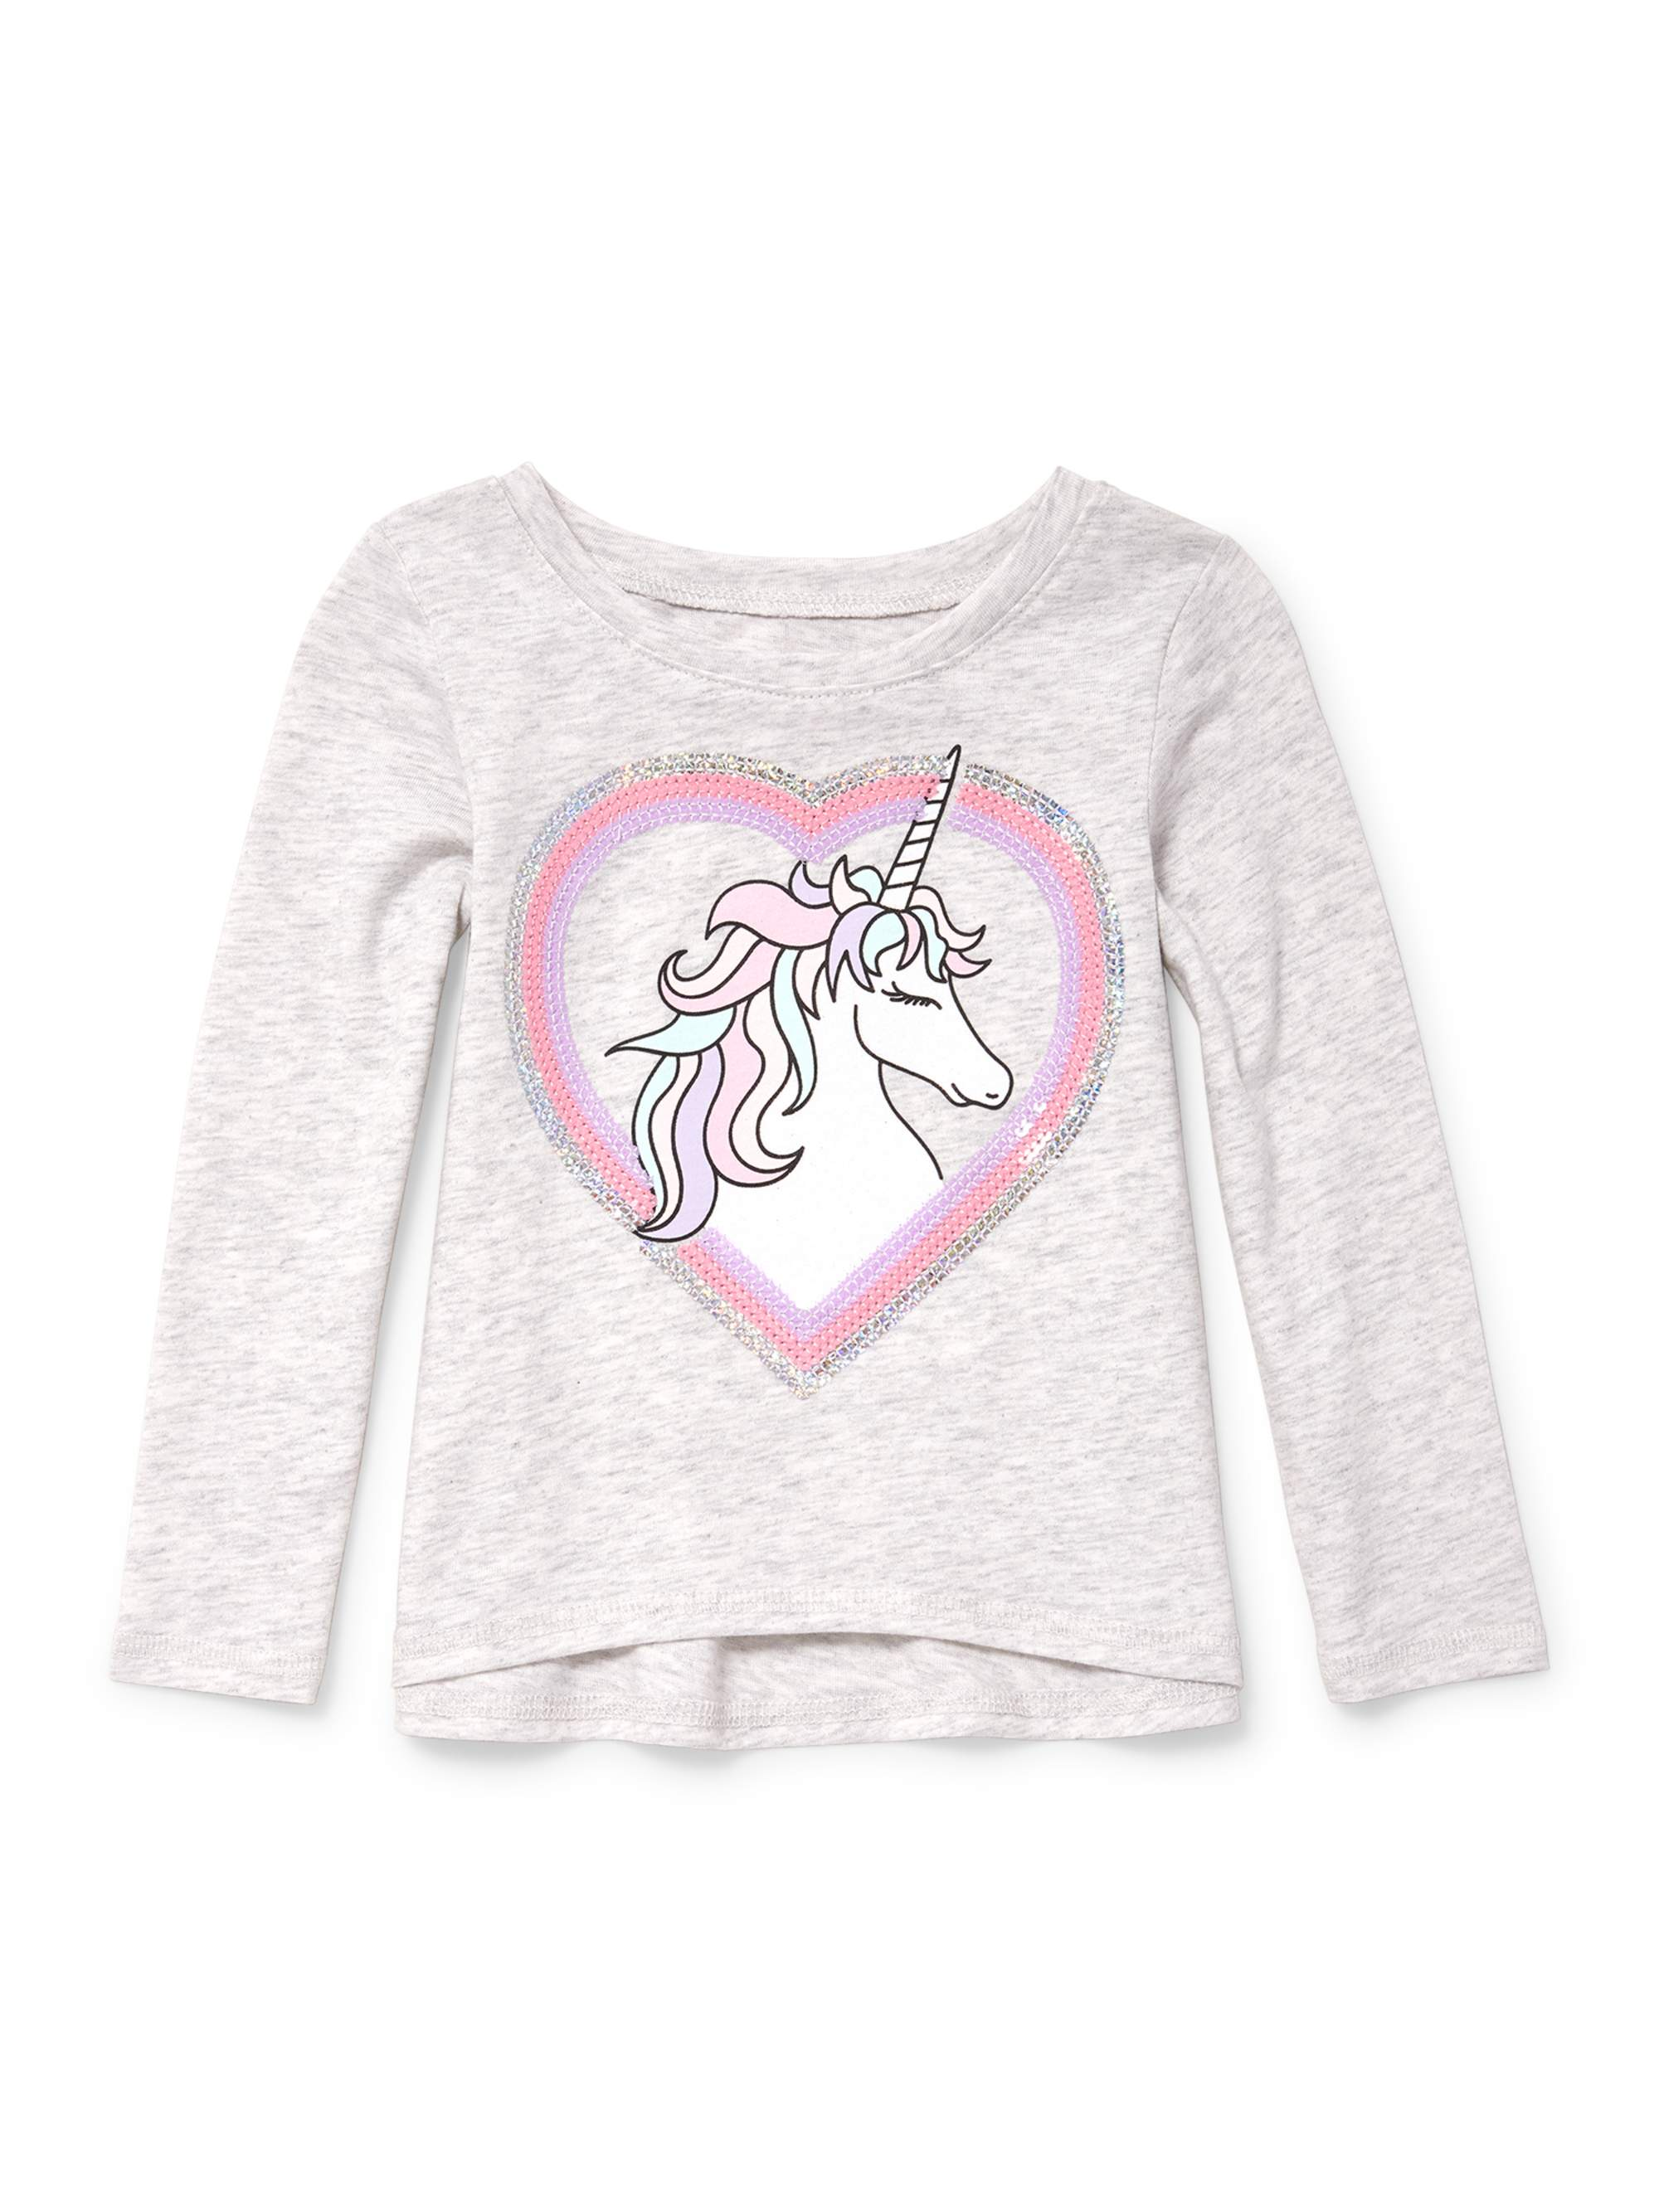 Long Sleeve Active Knit Top (Baby Girls & Toddler Girls)